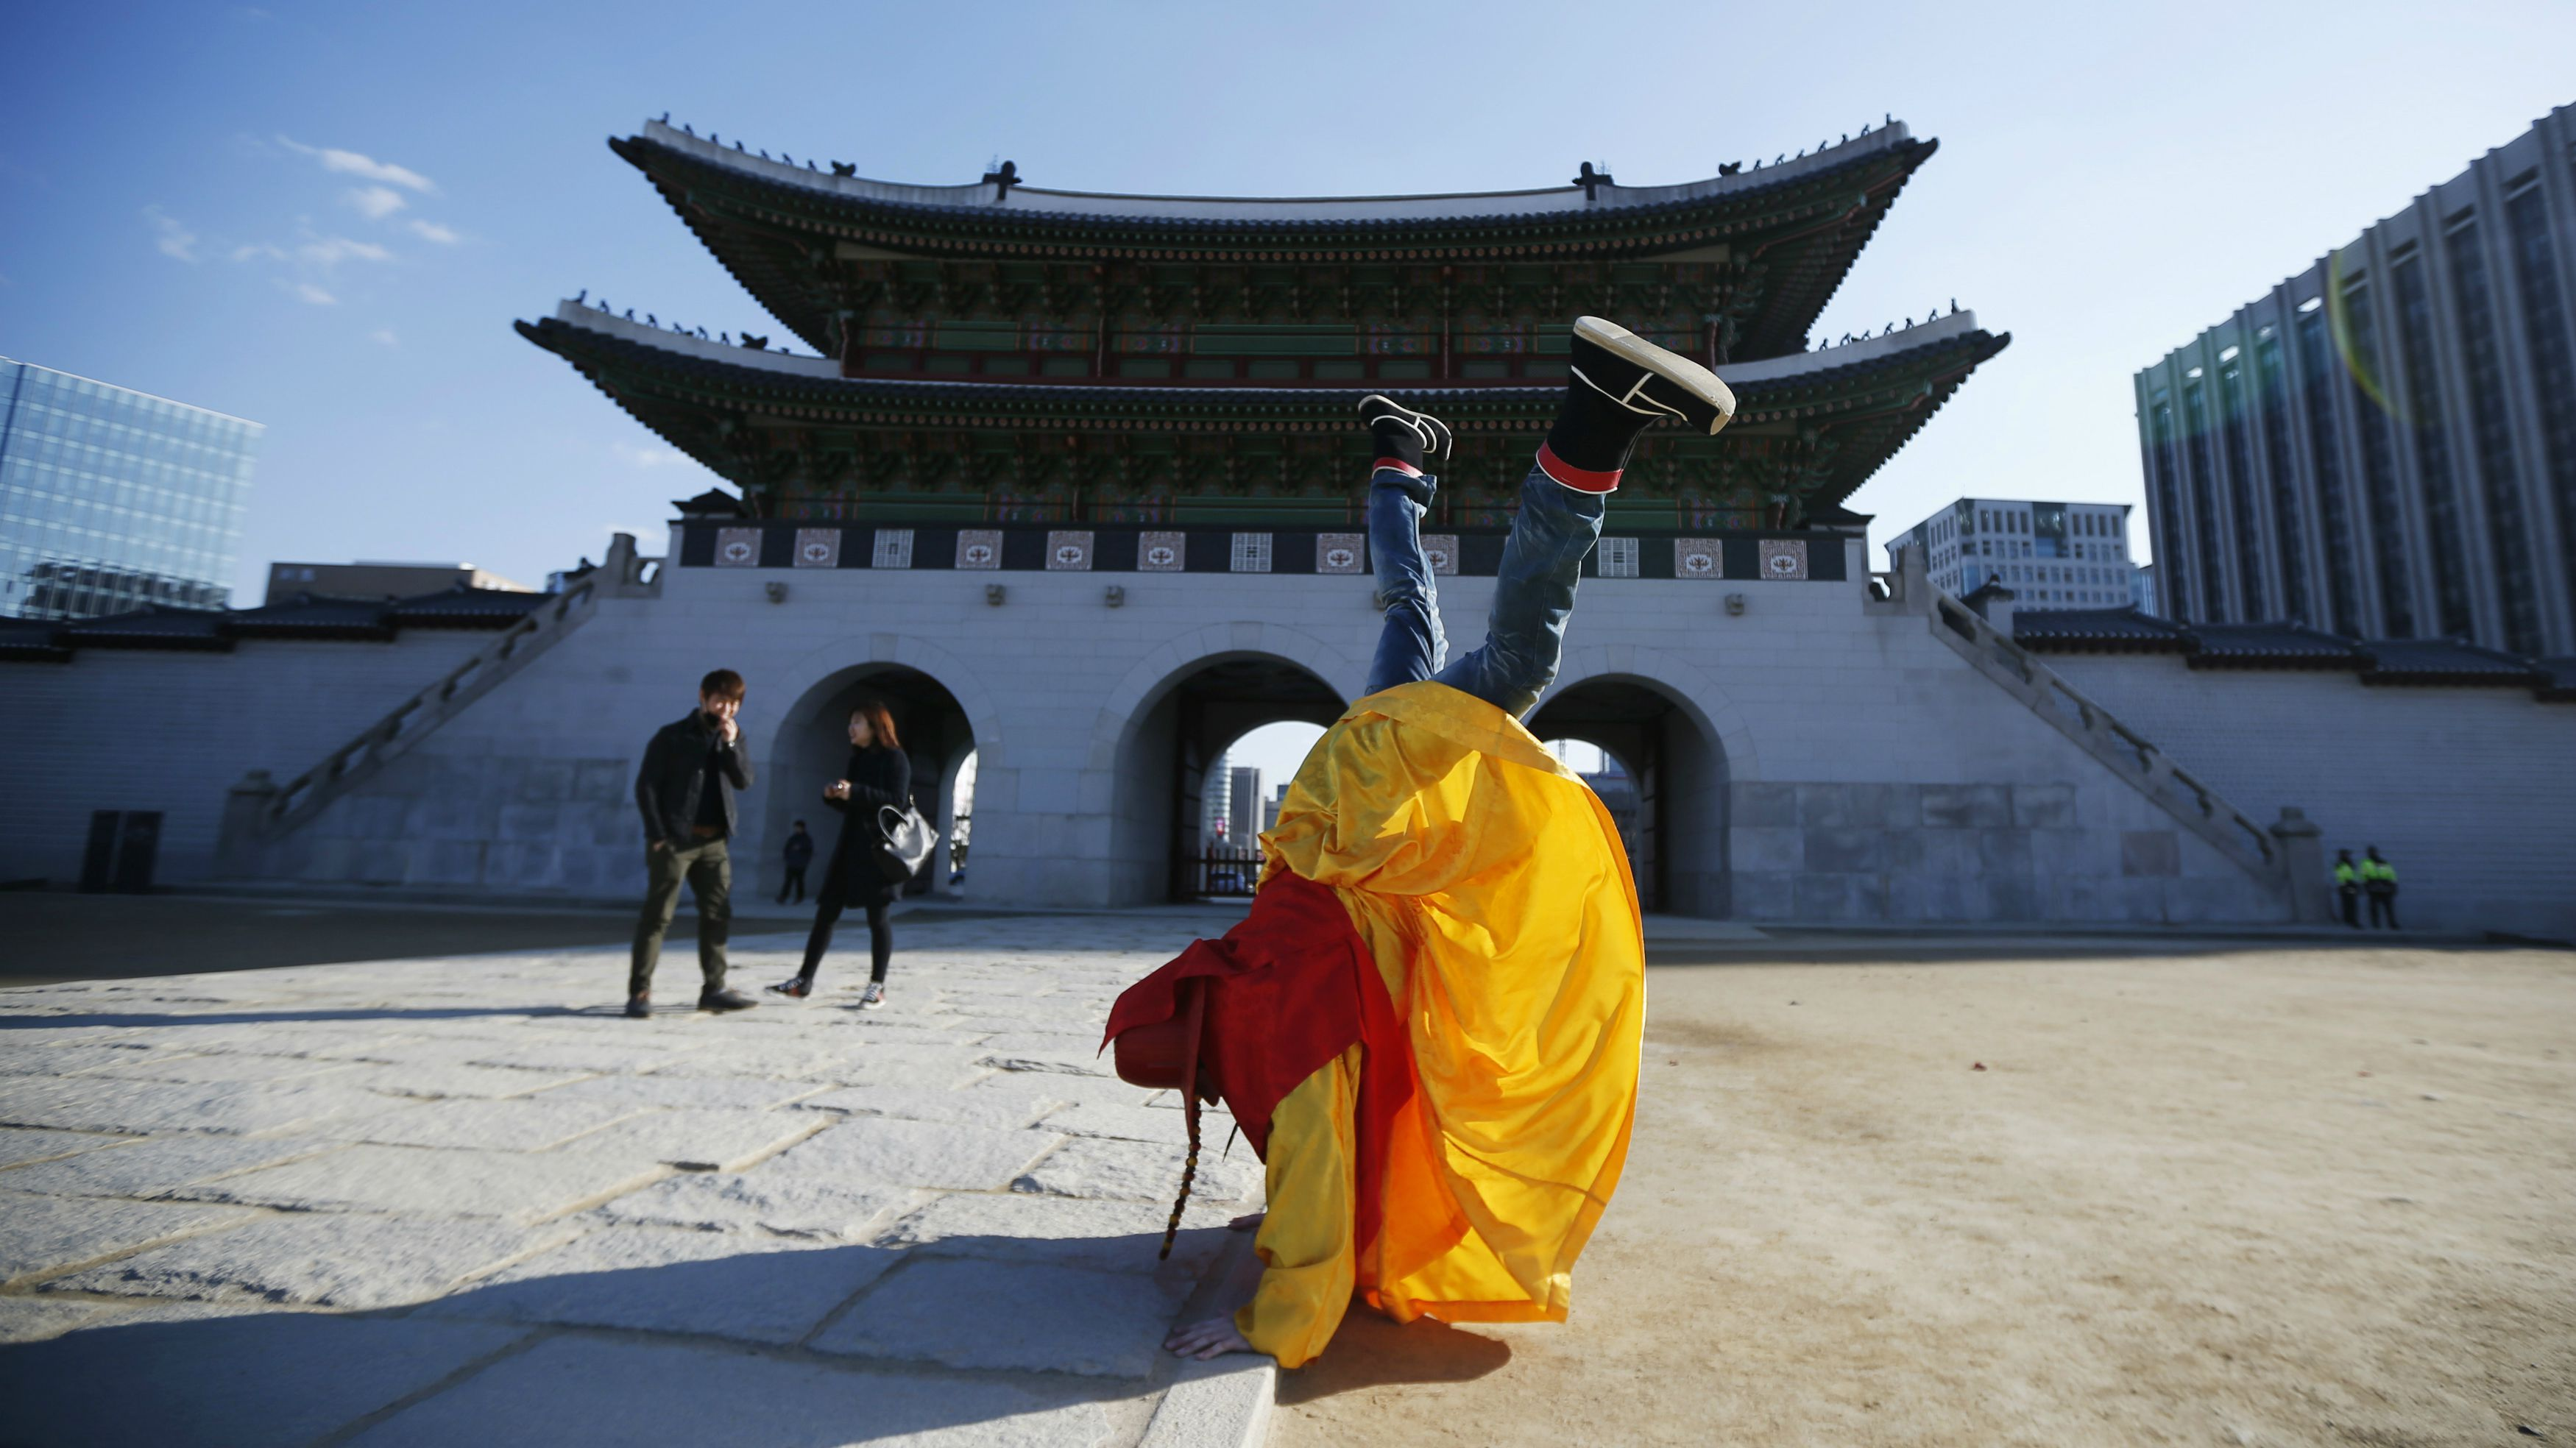 A tourist wearing a traditional costume stands on his hands to pose for a photograph in front of the main entrance of Gyeongbok palace on a sunny winter day in Seoul March 5, 2014. REUTERS/Kim Hong-Ji (SOUTH KOREA - Tags: SOCIETY TPX IMAGES OF THE DAY TRAVEL)